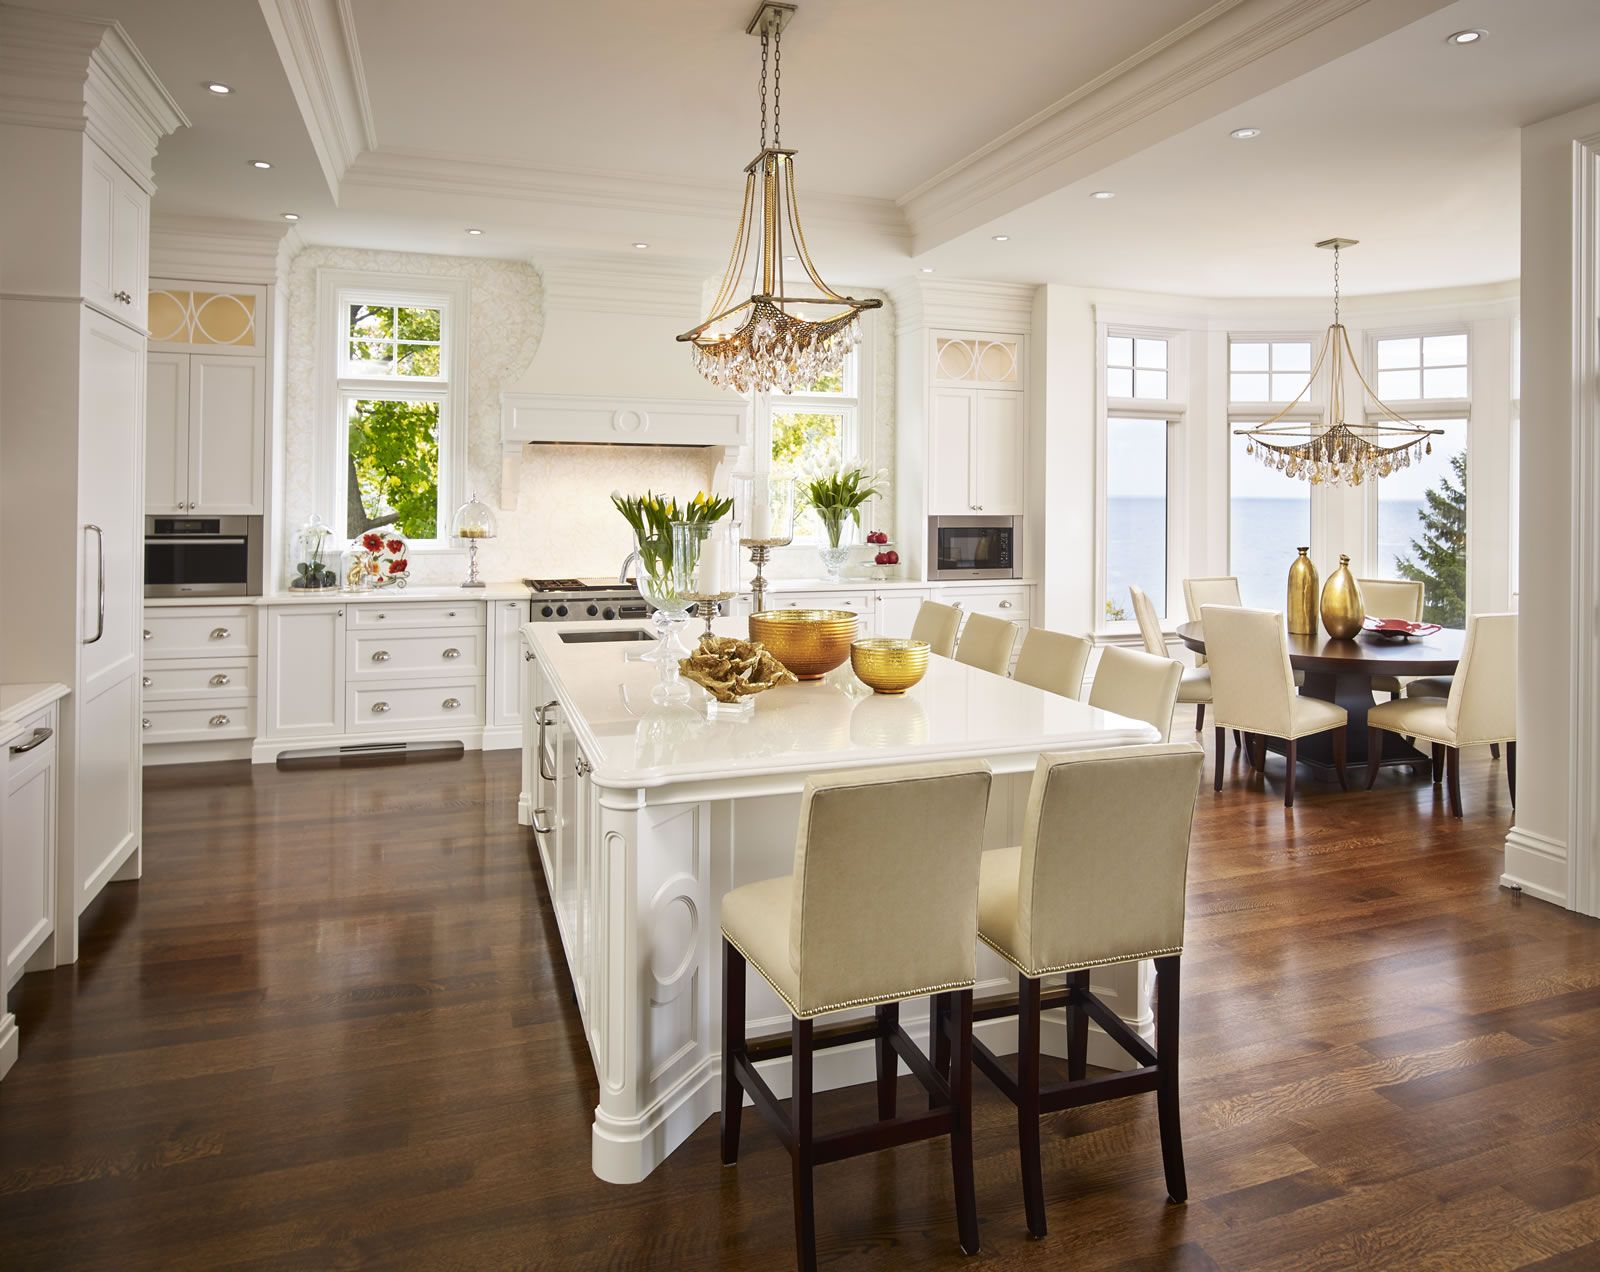 A sun-filled classic kitchen with bespoke lighting and panoramic lake views. Designed by Regina Sturrock Design Inc.